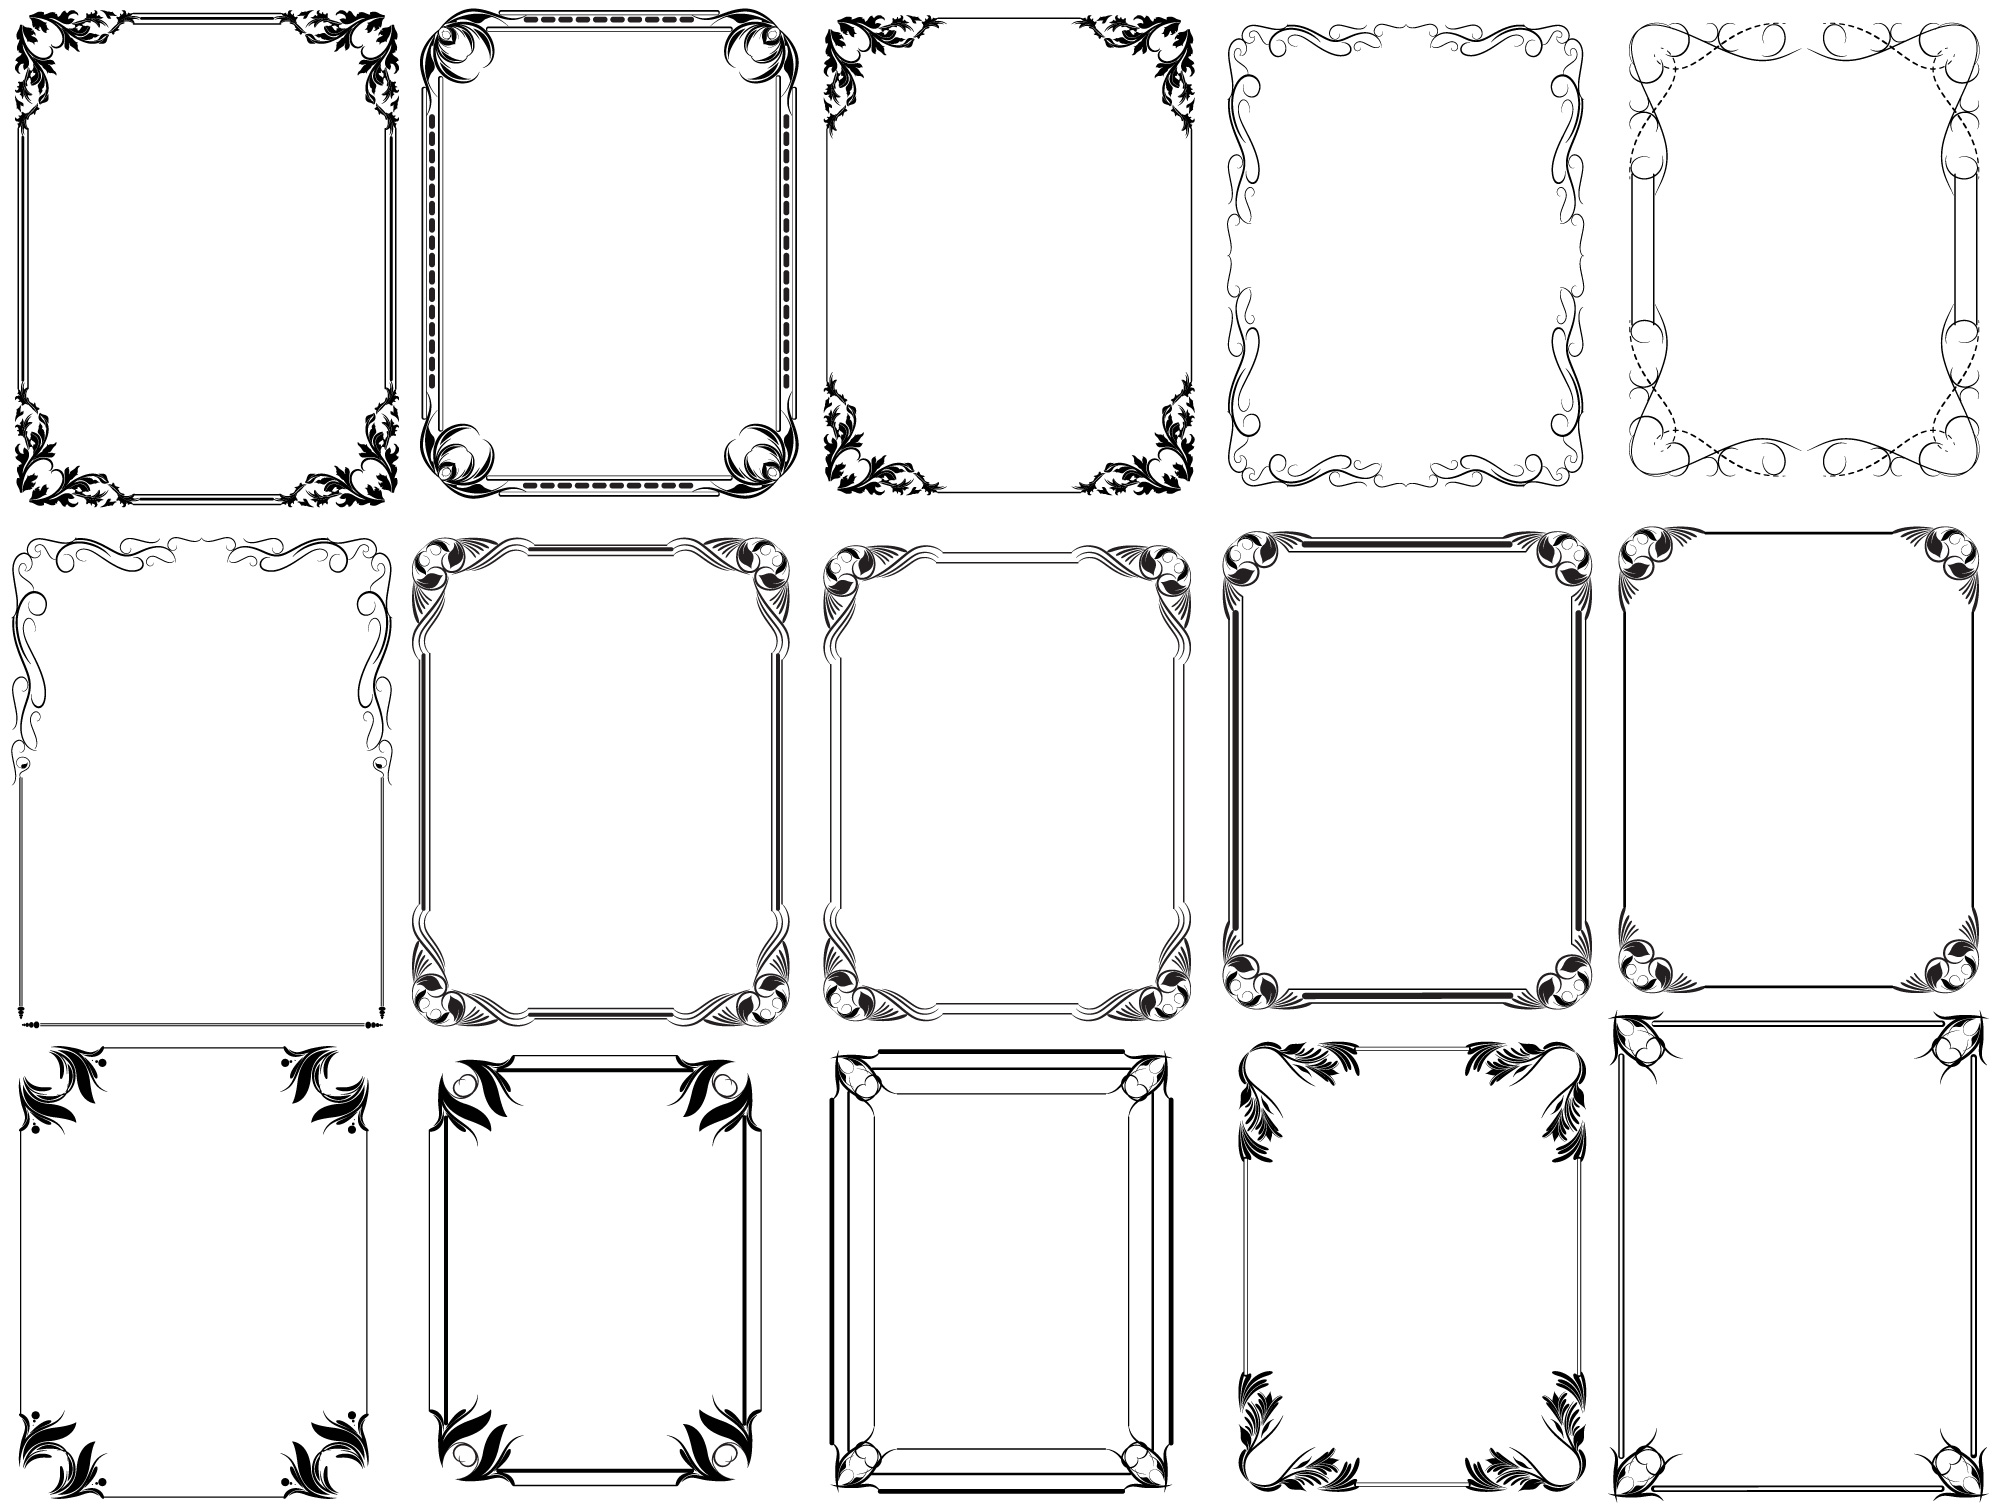 Free Photoshop Shapes Frames